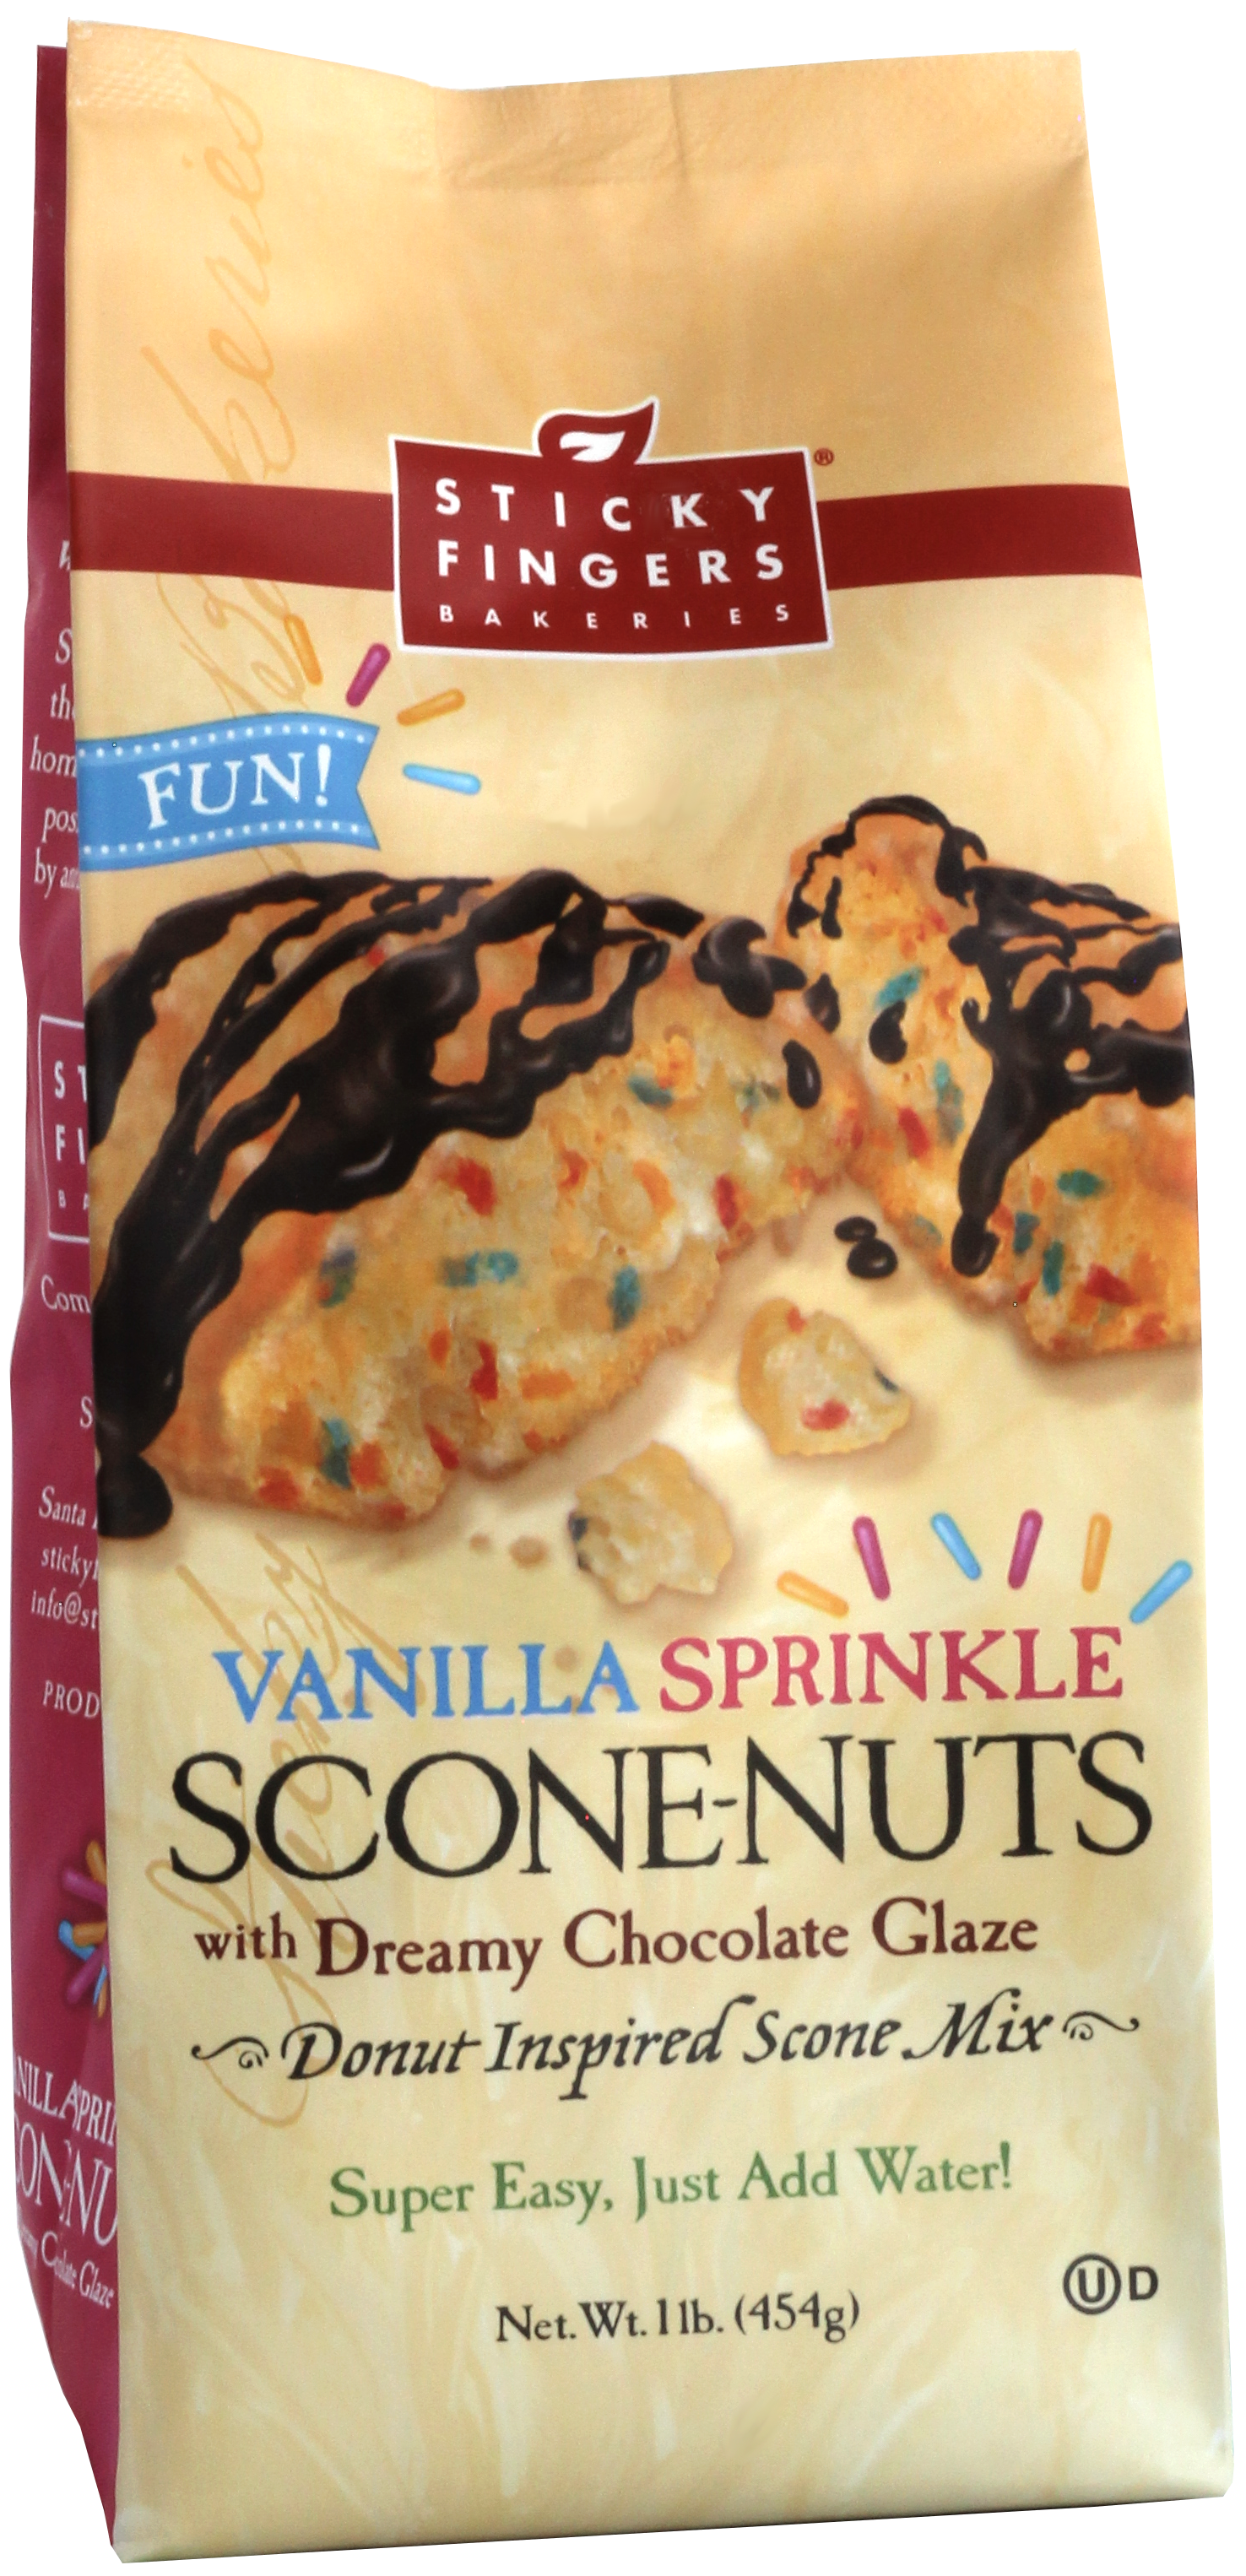 Vanilla Sprinkle Scone-Nuts